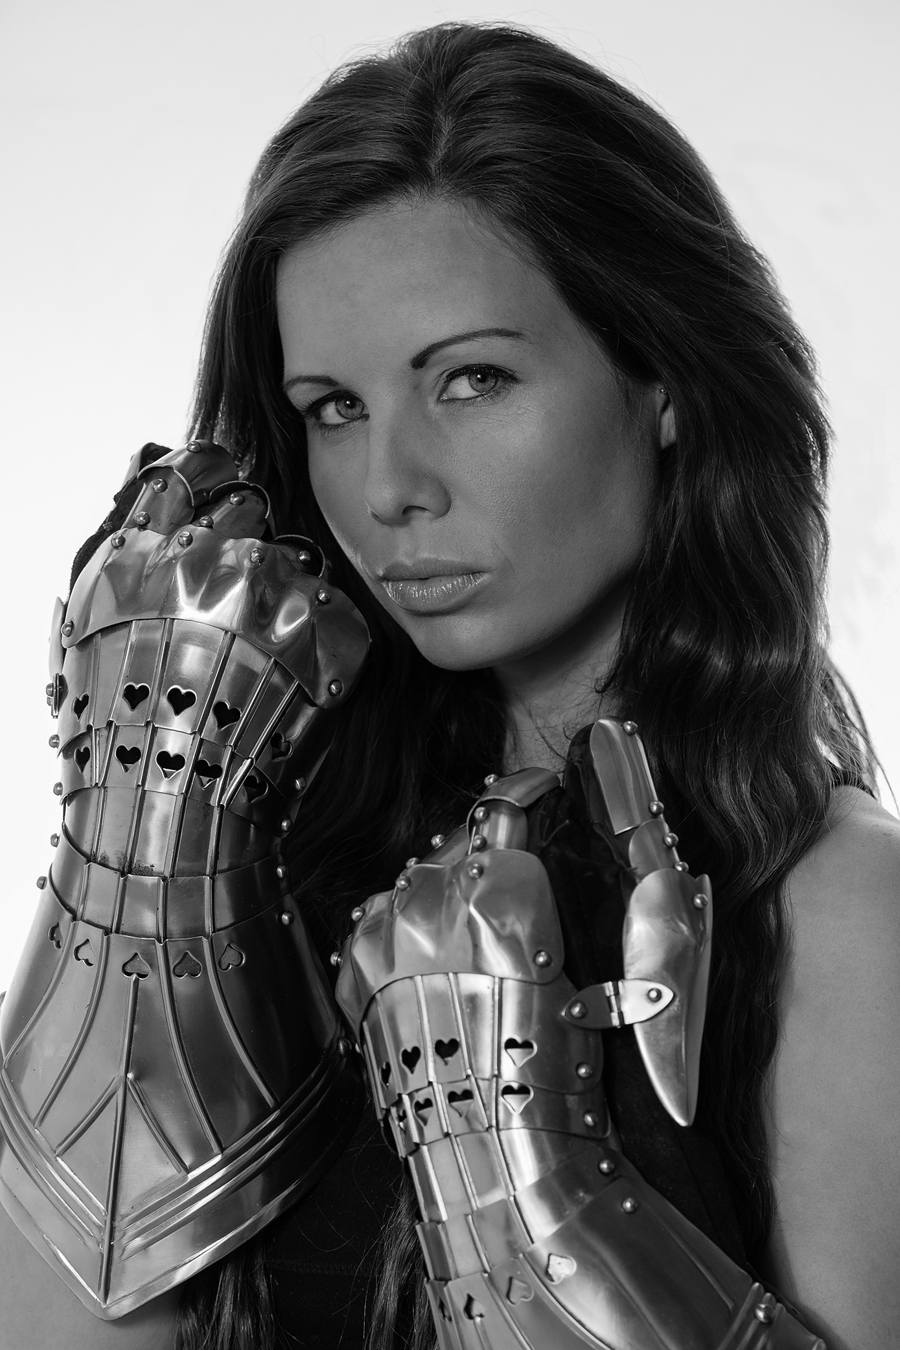 Fiona York Knight's Armour / Photography by Andy Oliver, Model Fiona, Post processing by Andy Oliver, Taken at Ollie's Studio / Uploaded 24th November 2017 @ 10:00 PM